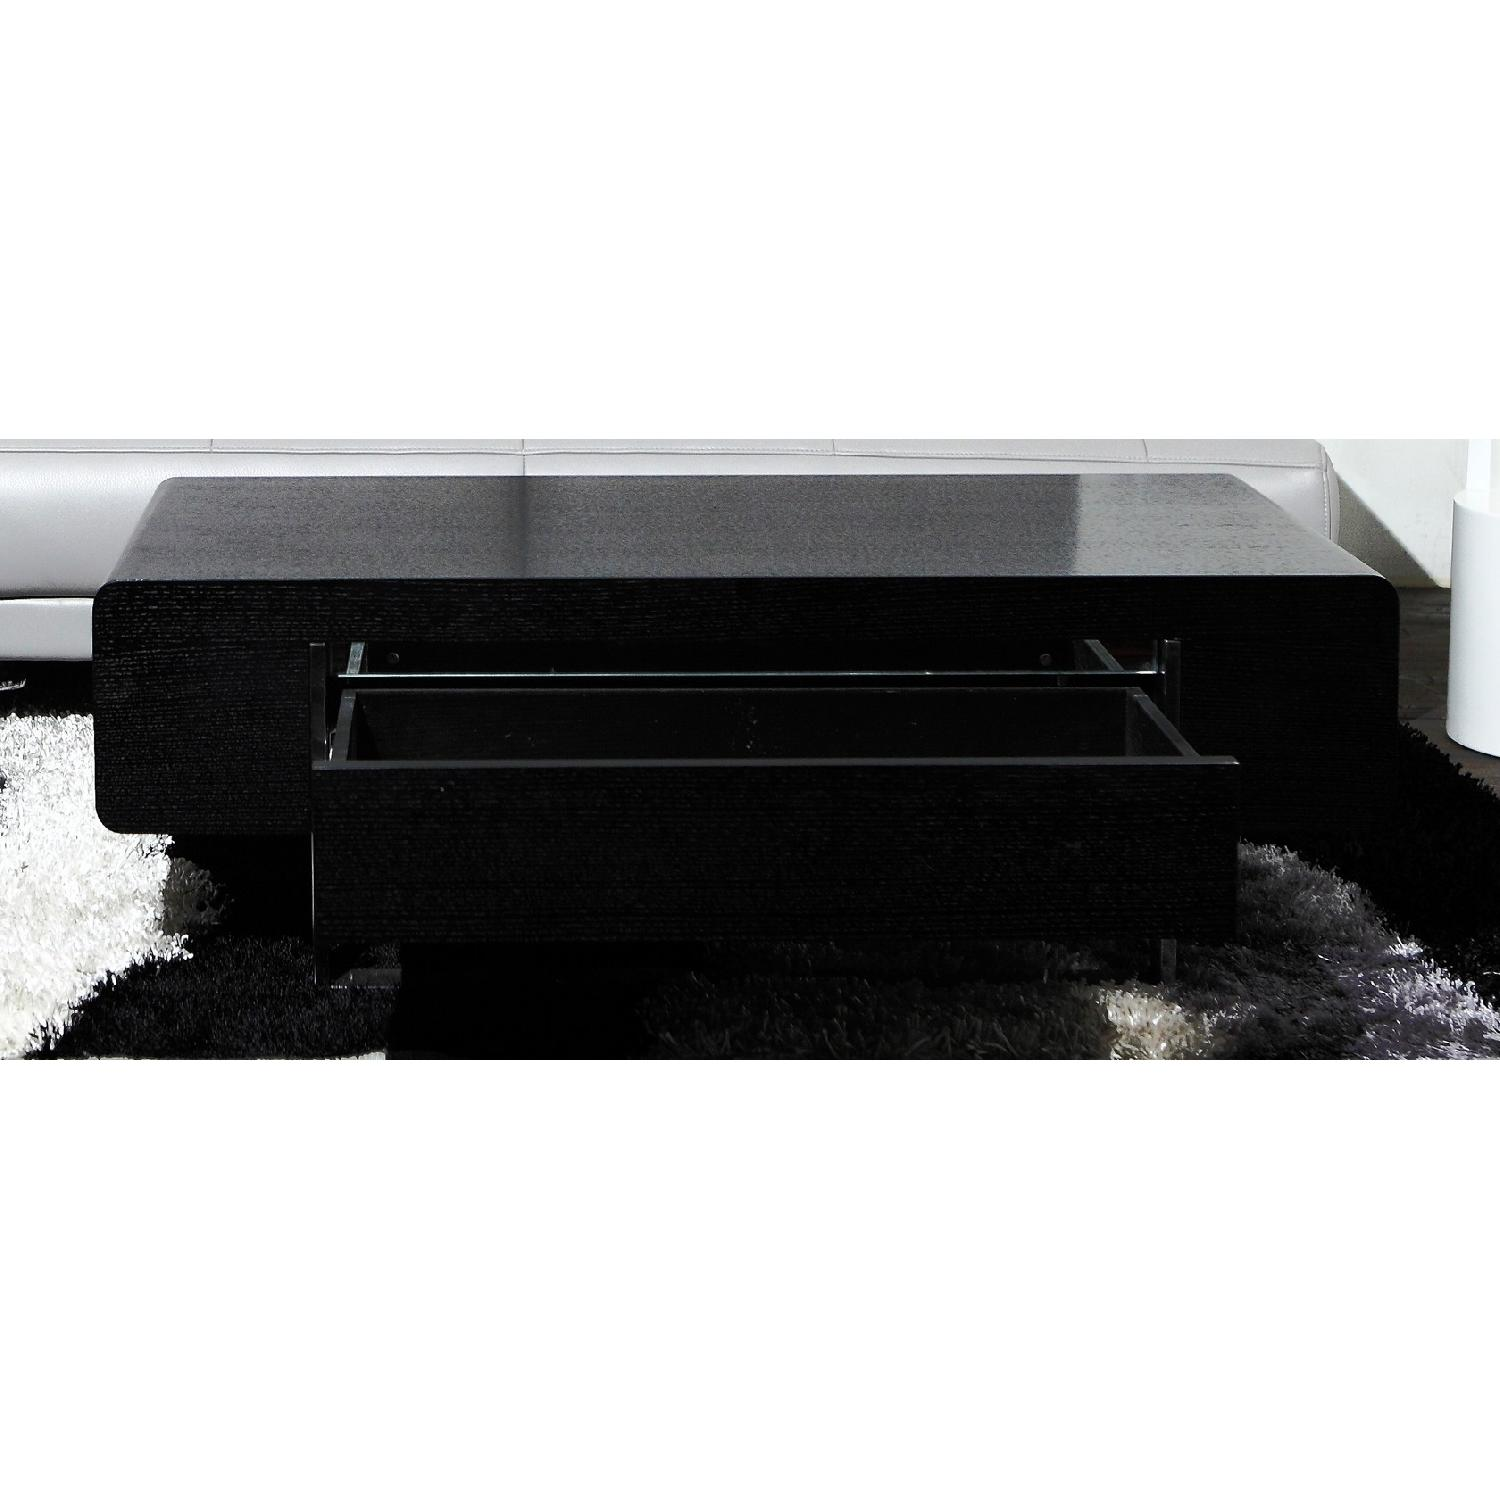 Modern Coffee Table in Matte Black Finish w/ Storage Drawer